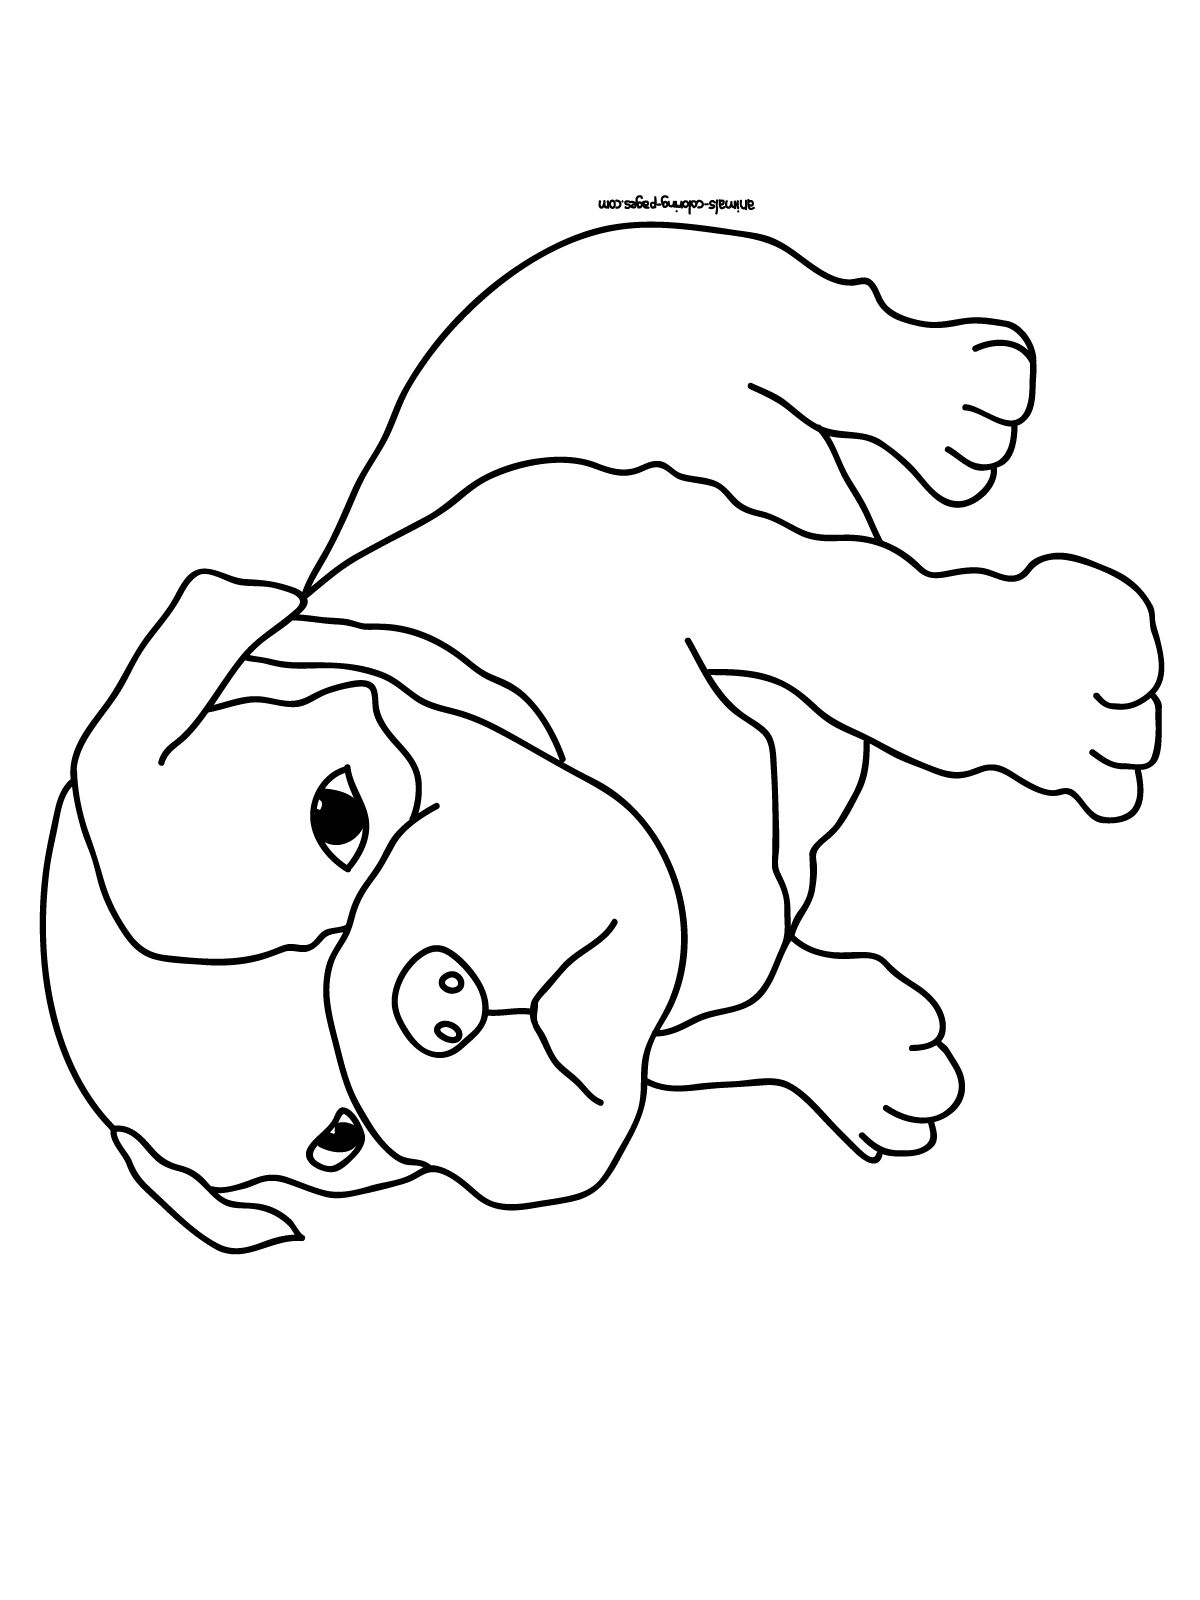 Dog Coloring Pages For Kids Printable Then Picturesque Dog Dog .